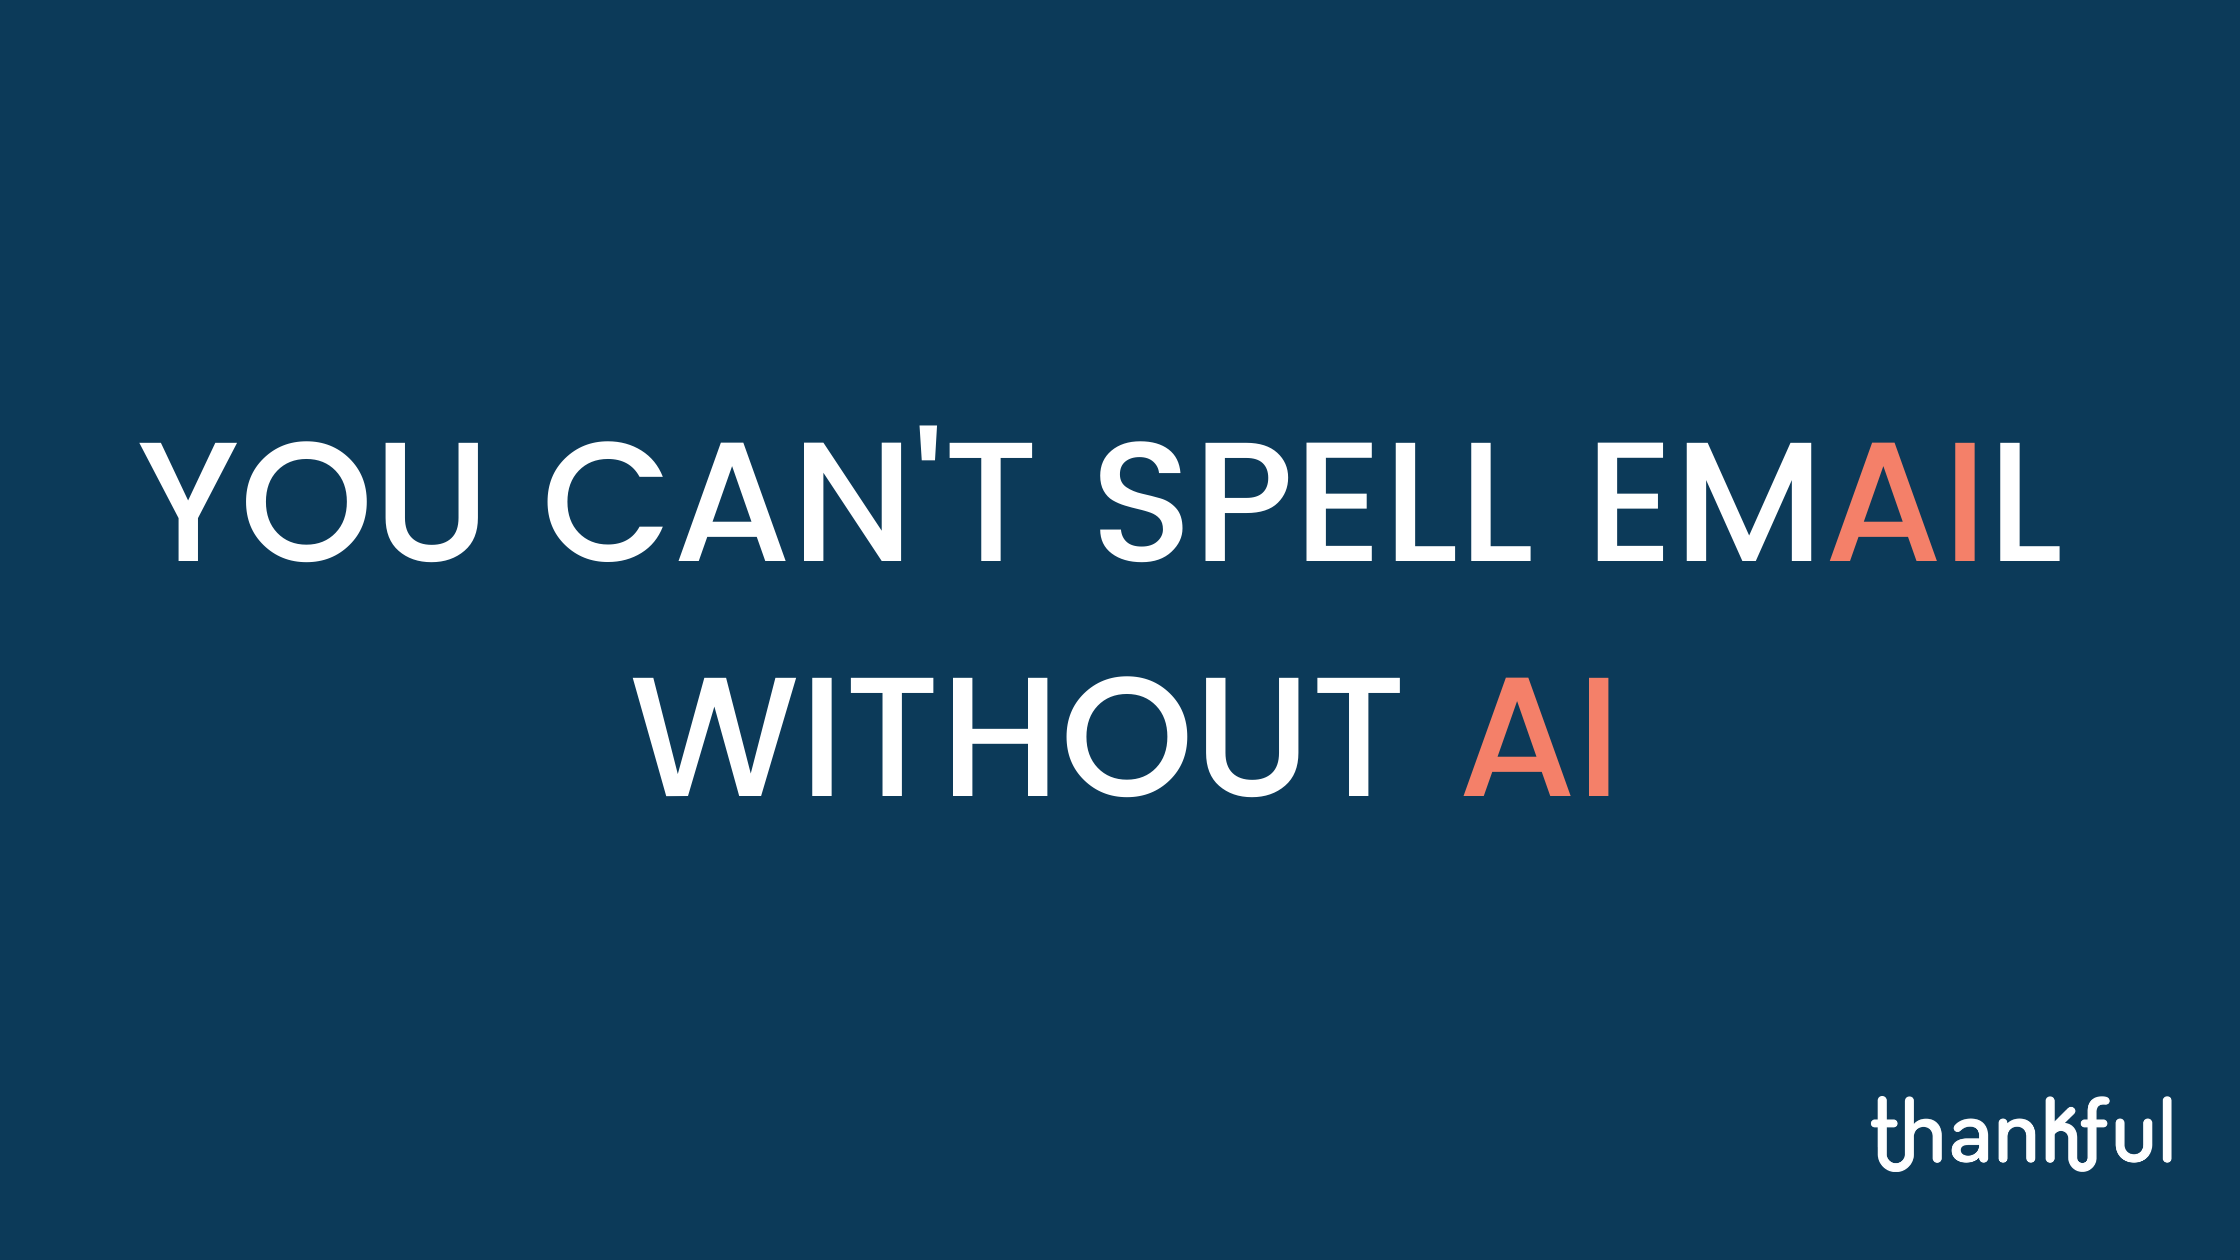 YOU CANT SPELL EMAIL WITHOUT AI